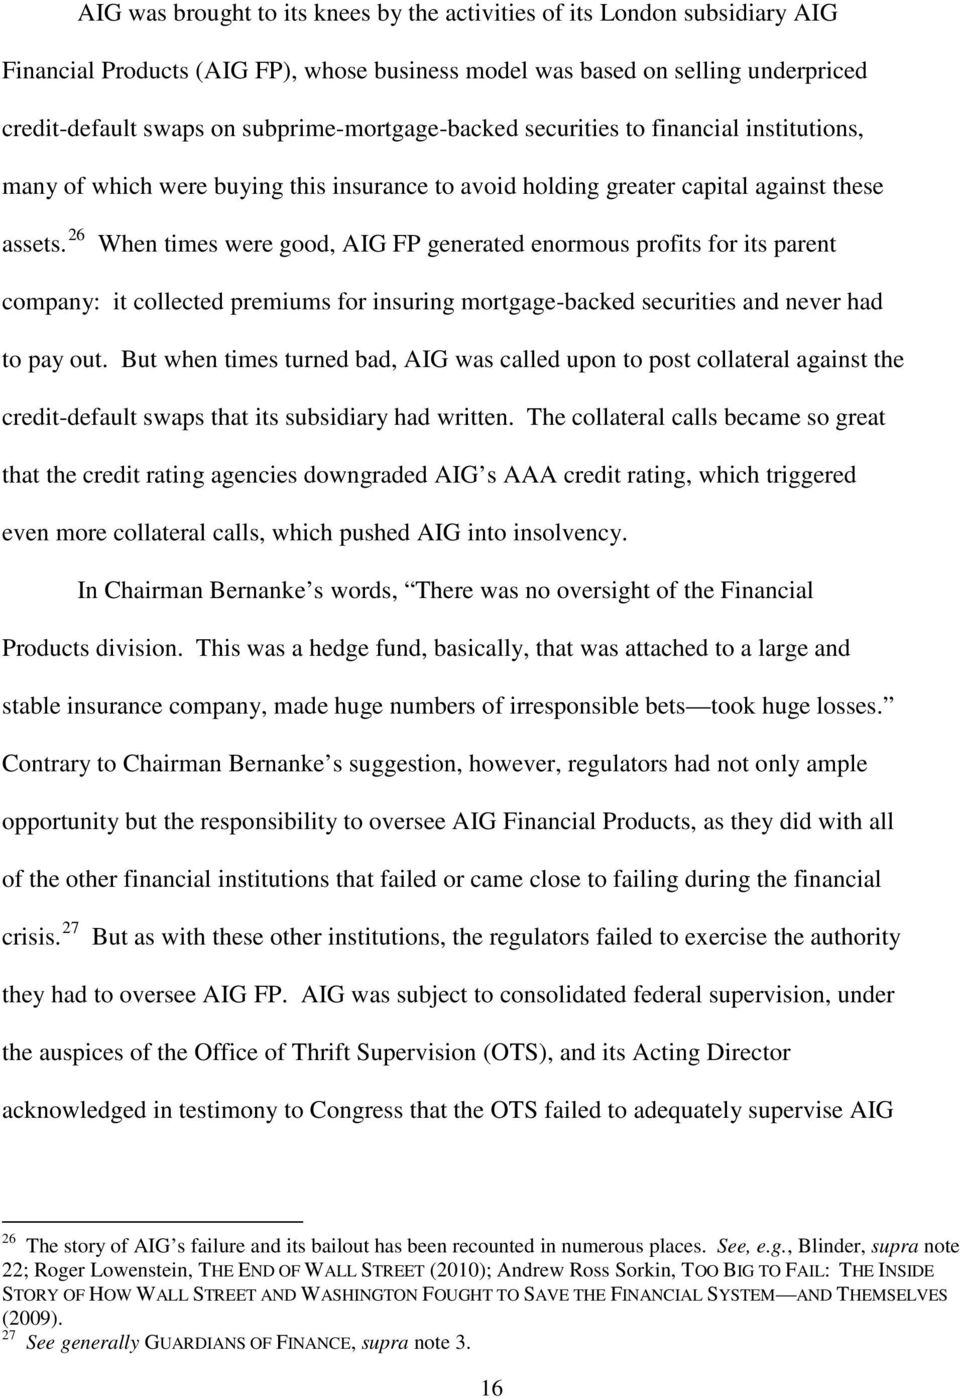 26 When times were good, AIG FP generated enormous profits for its parent company: it collected premiums for insuring mortgage-backed securities and never had to pay out.